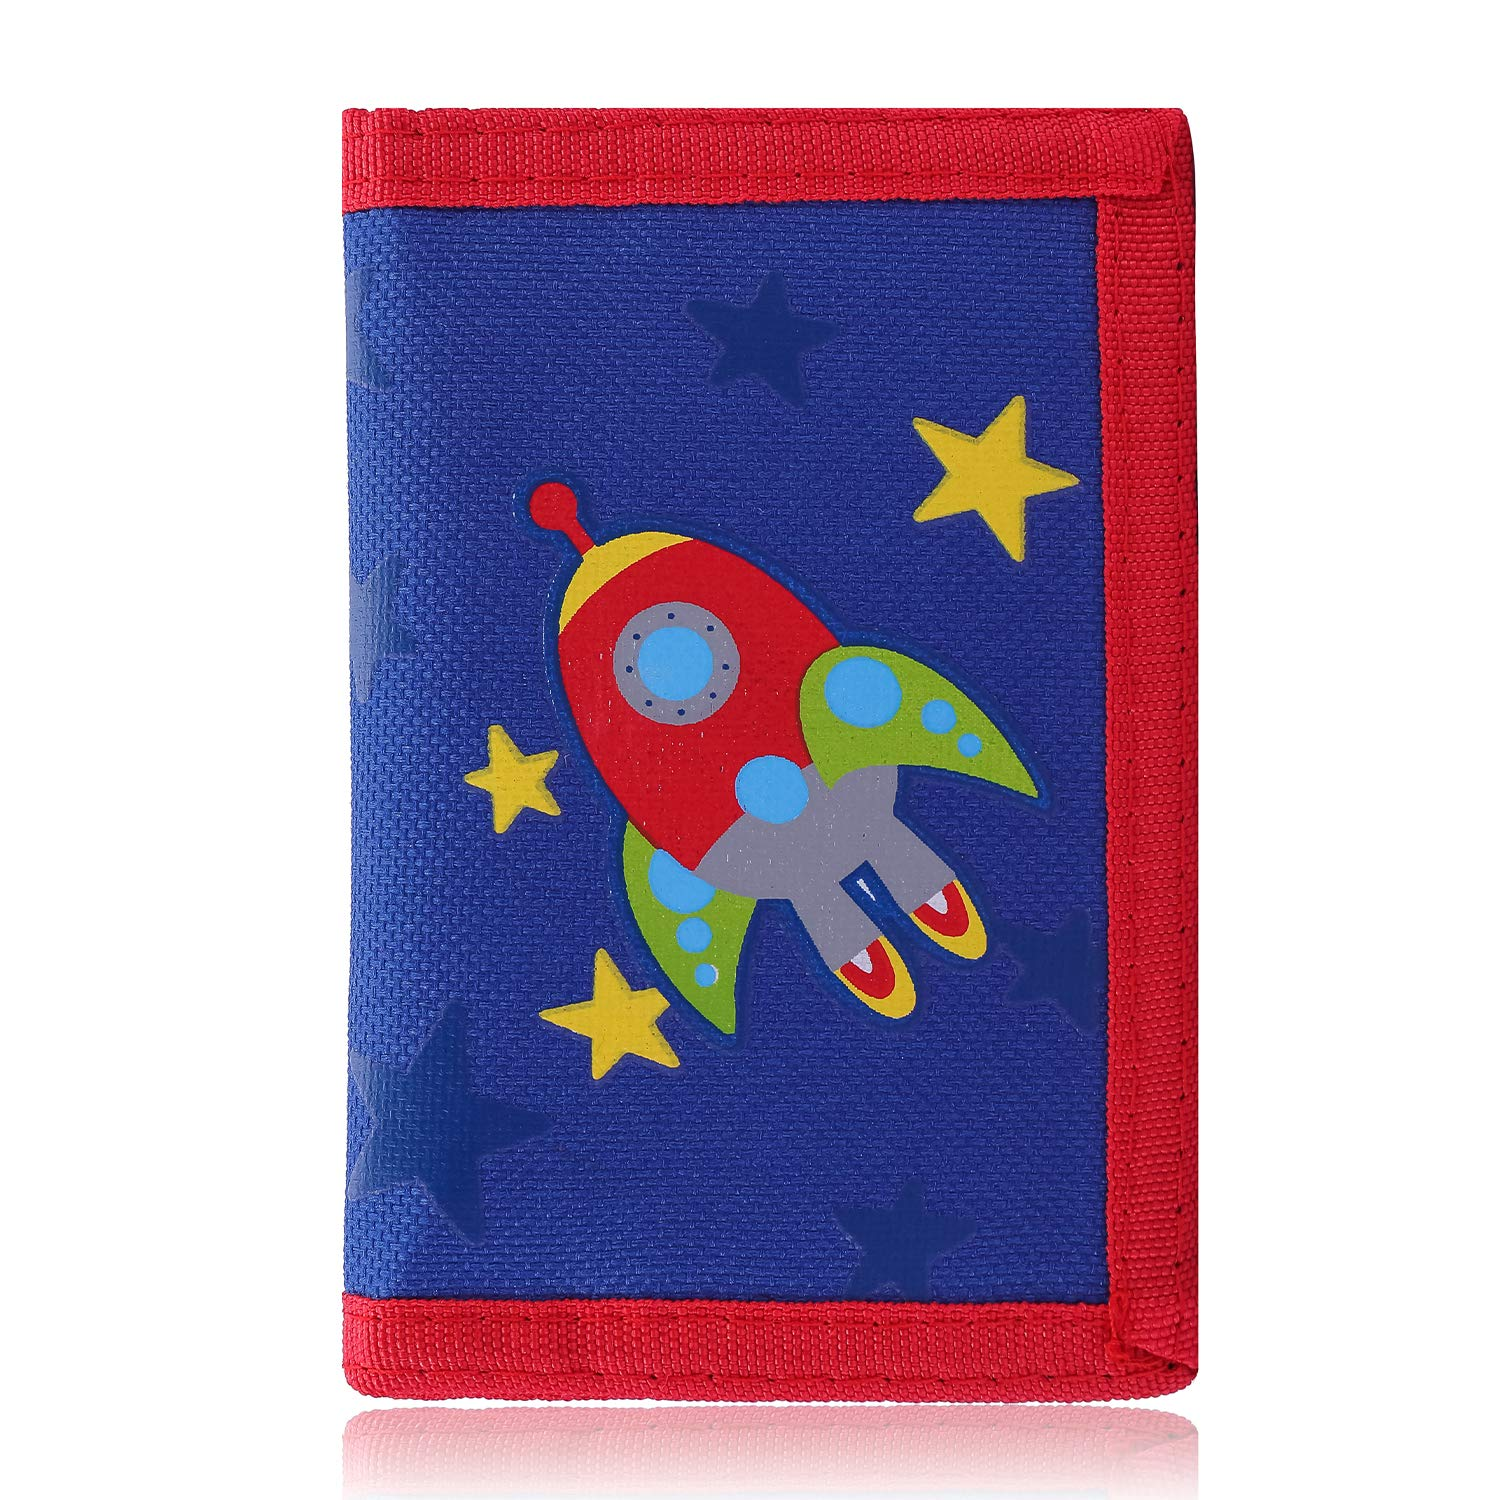 RFID Trifold Canvas Outdoor Cartoon Wallet for Kids/Slim Front Pocket Wallet with Zipper (Airship)